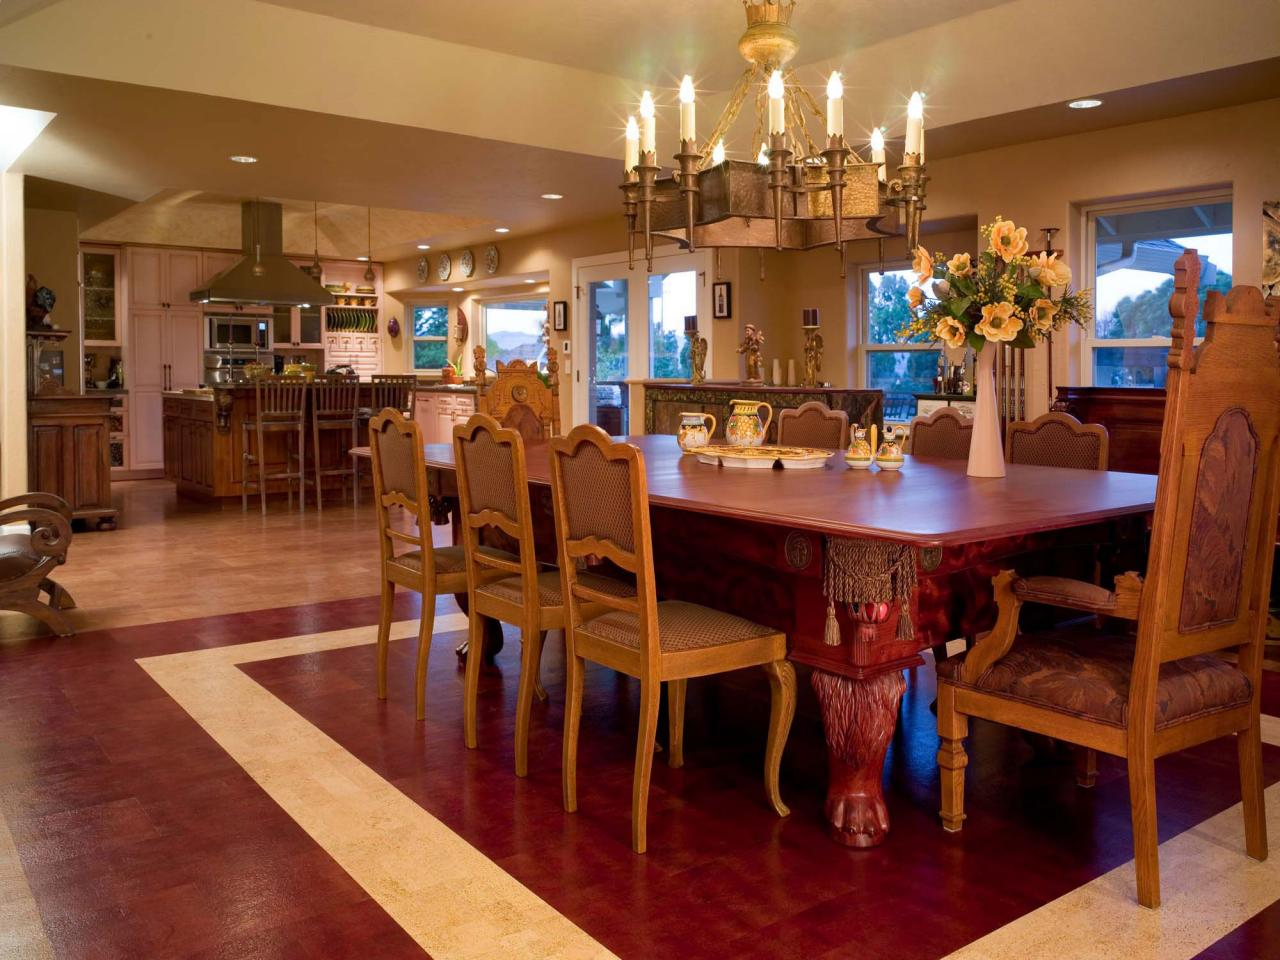 Wood and Tile the Dining Room Flooring for Comfortable - Shhozz